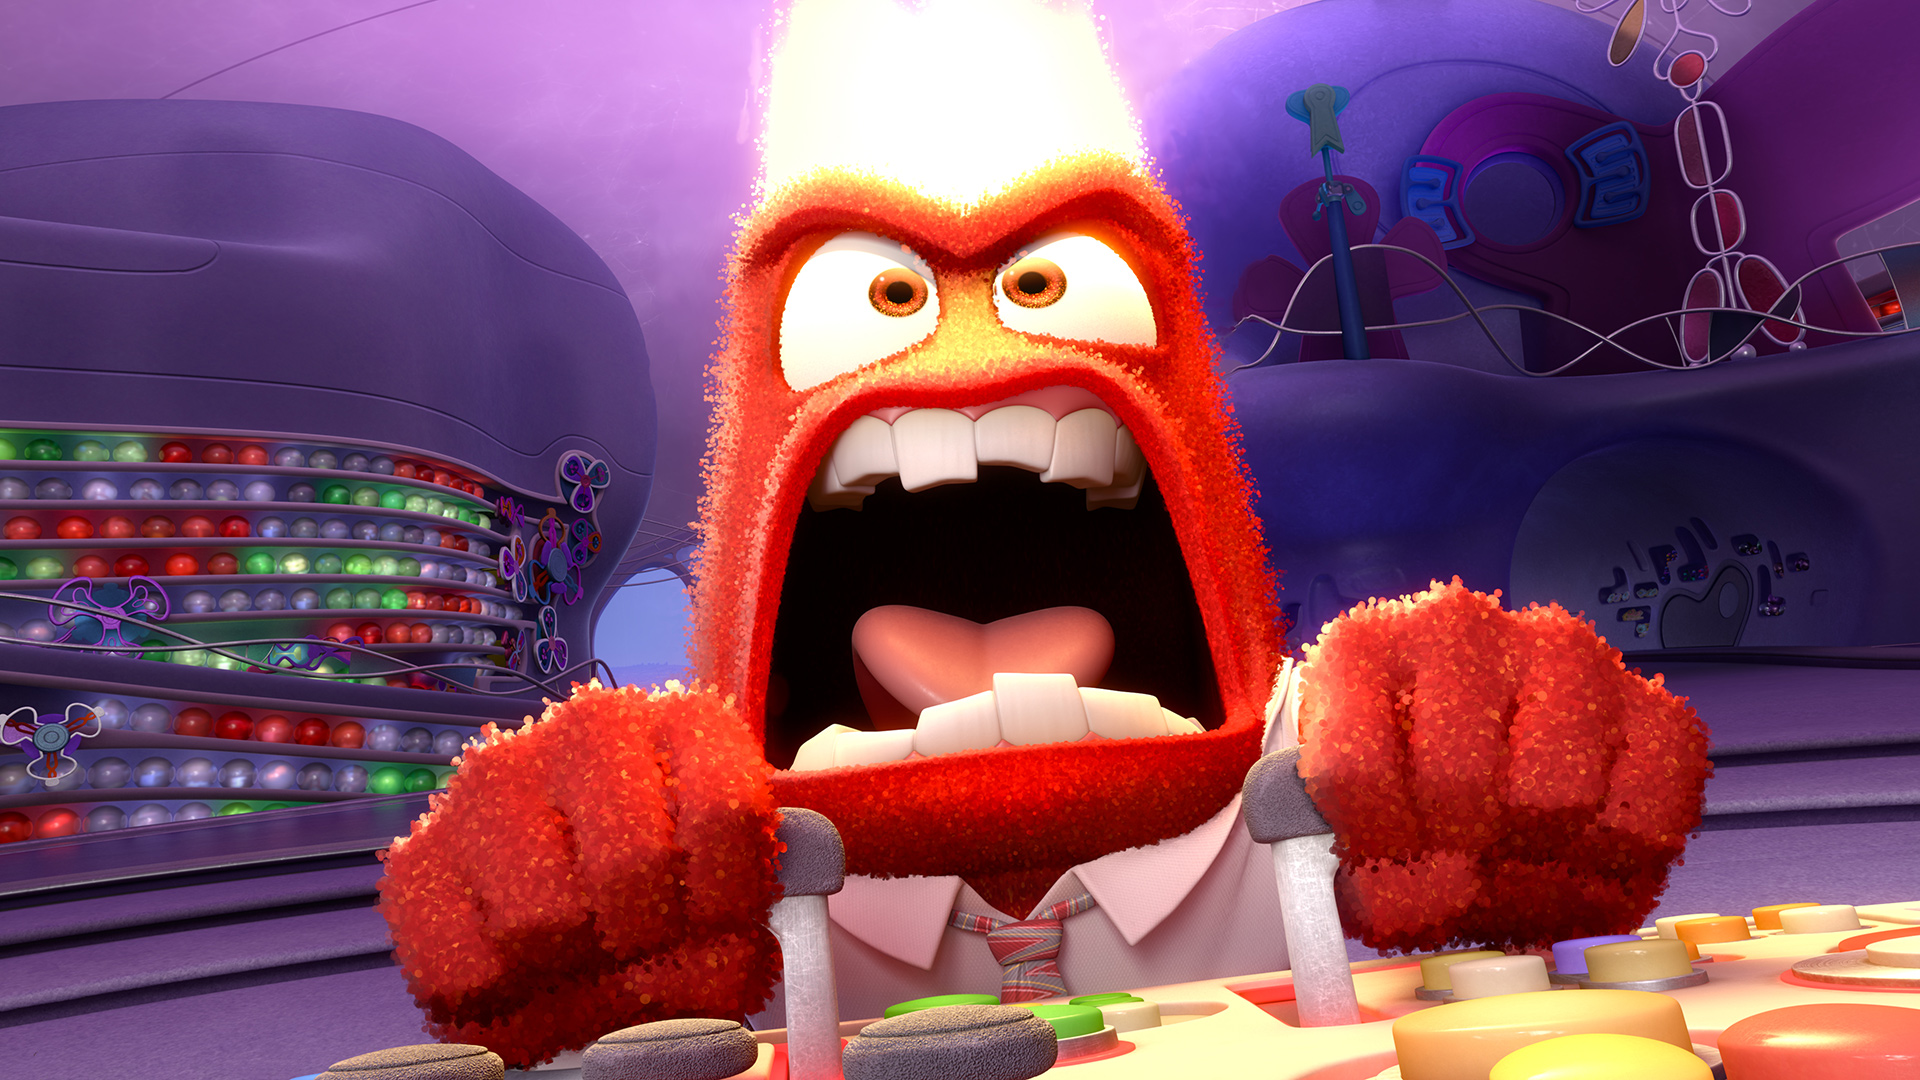 image source: Official Inside Out Movie site